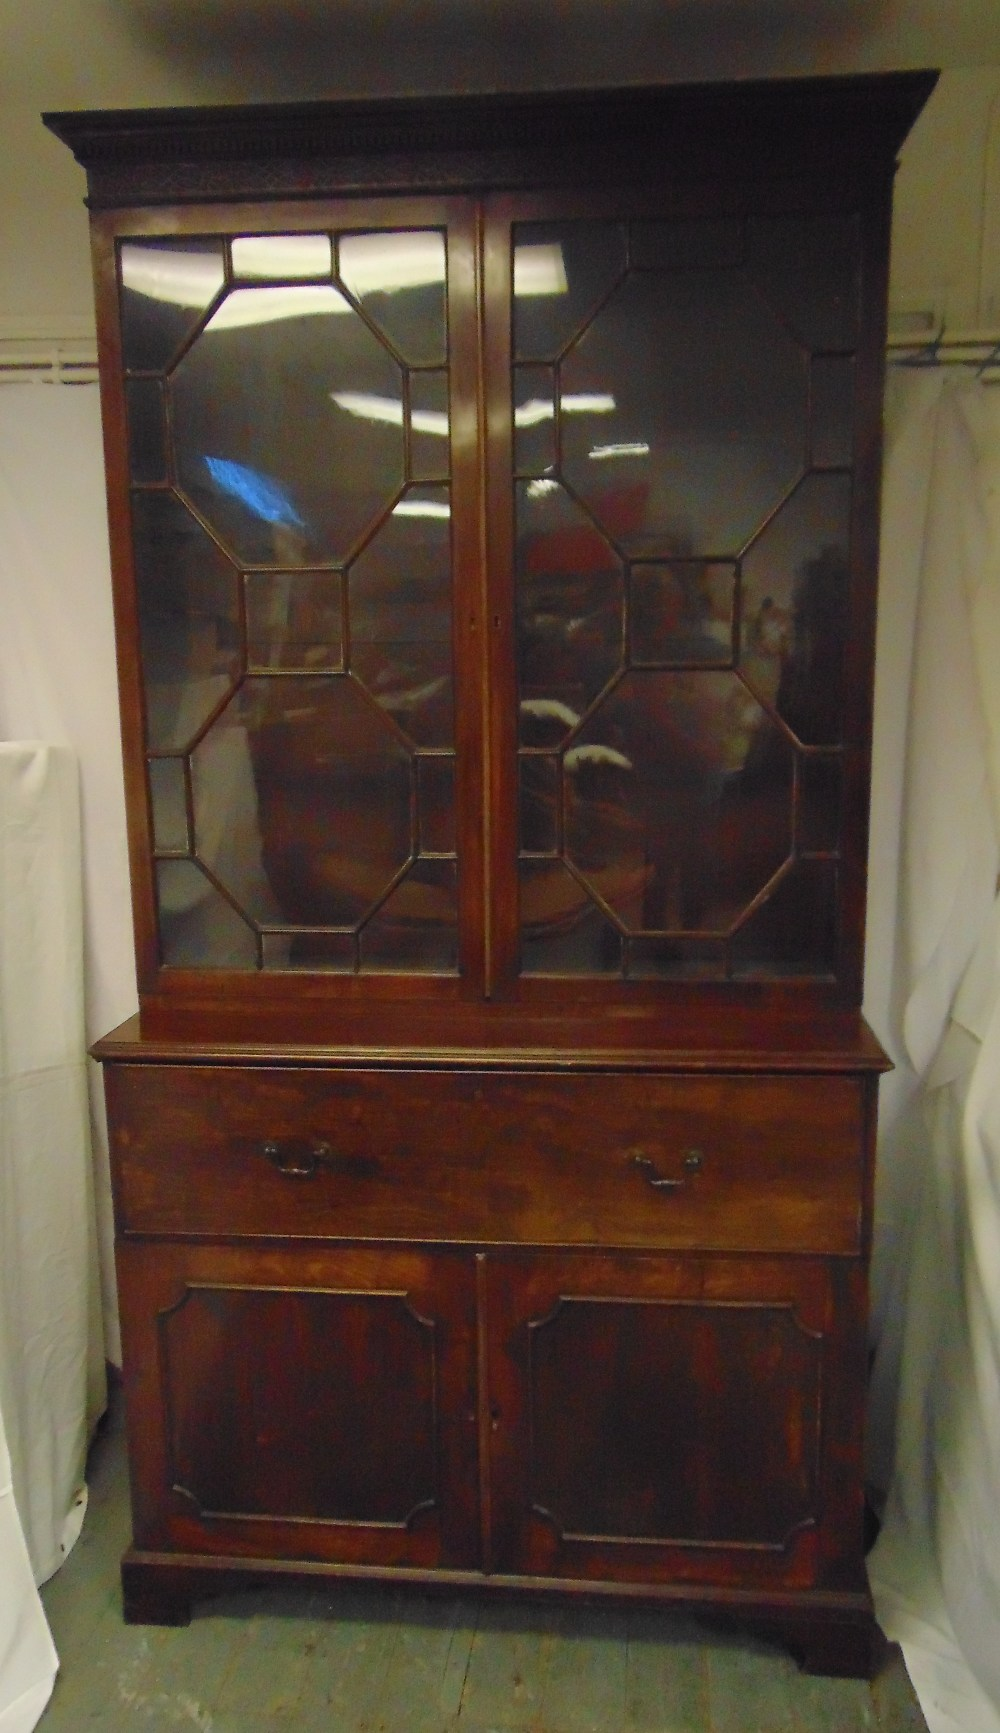 Lot 3 - A 19th century rectangular mahogany secretaire bookcase, with hinged glazed doors above four drawers